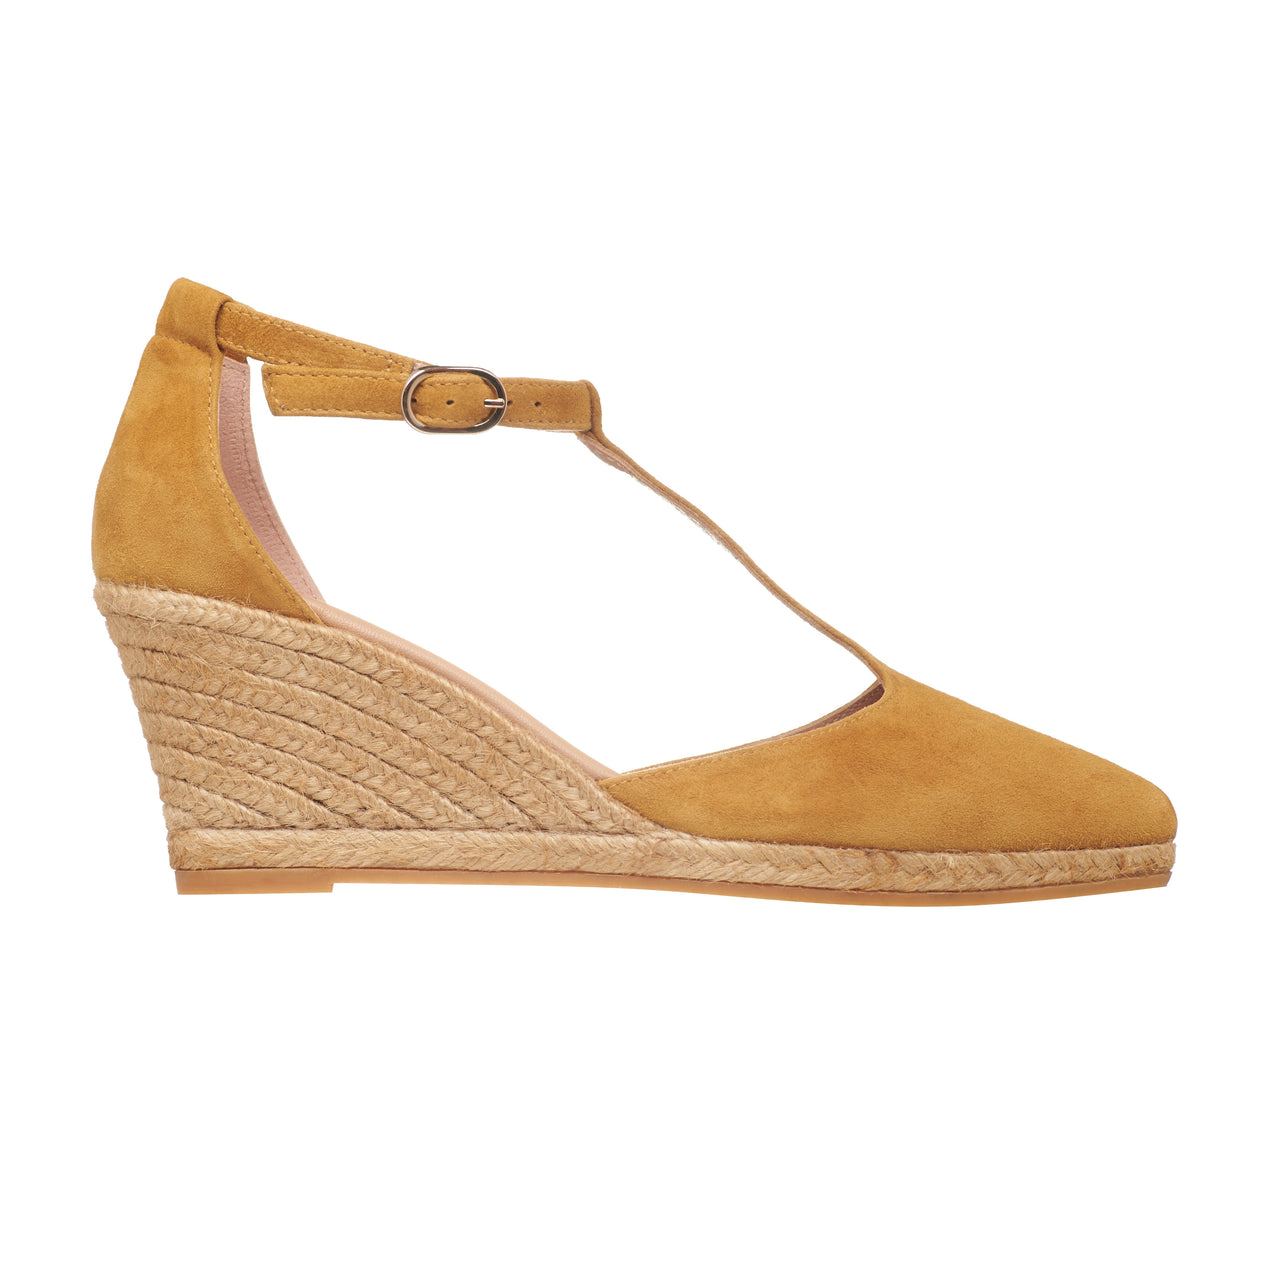 TUREIS Ochre espadrilles - Badt and Co - singapore